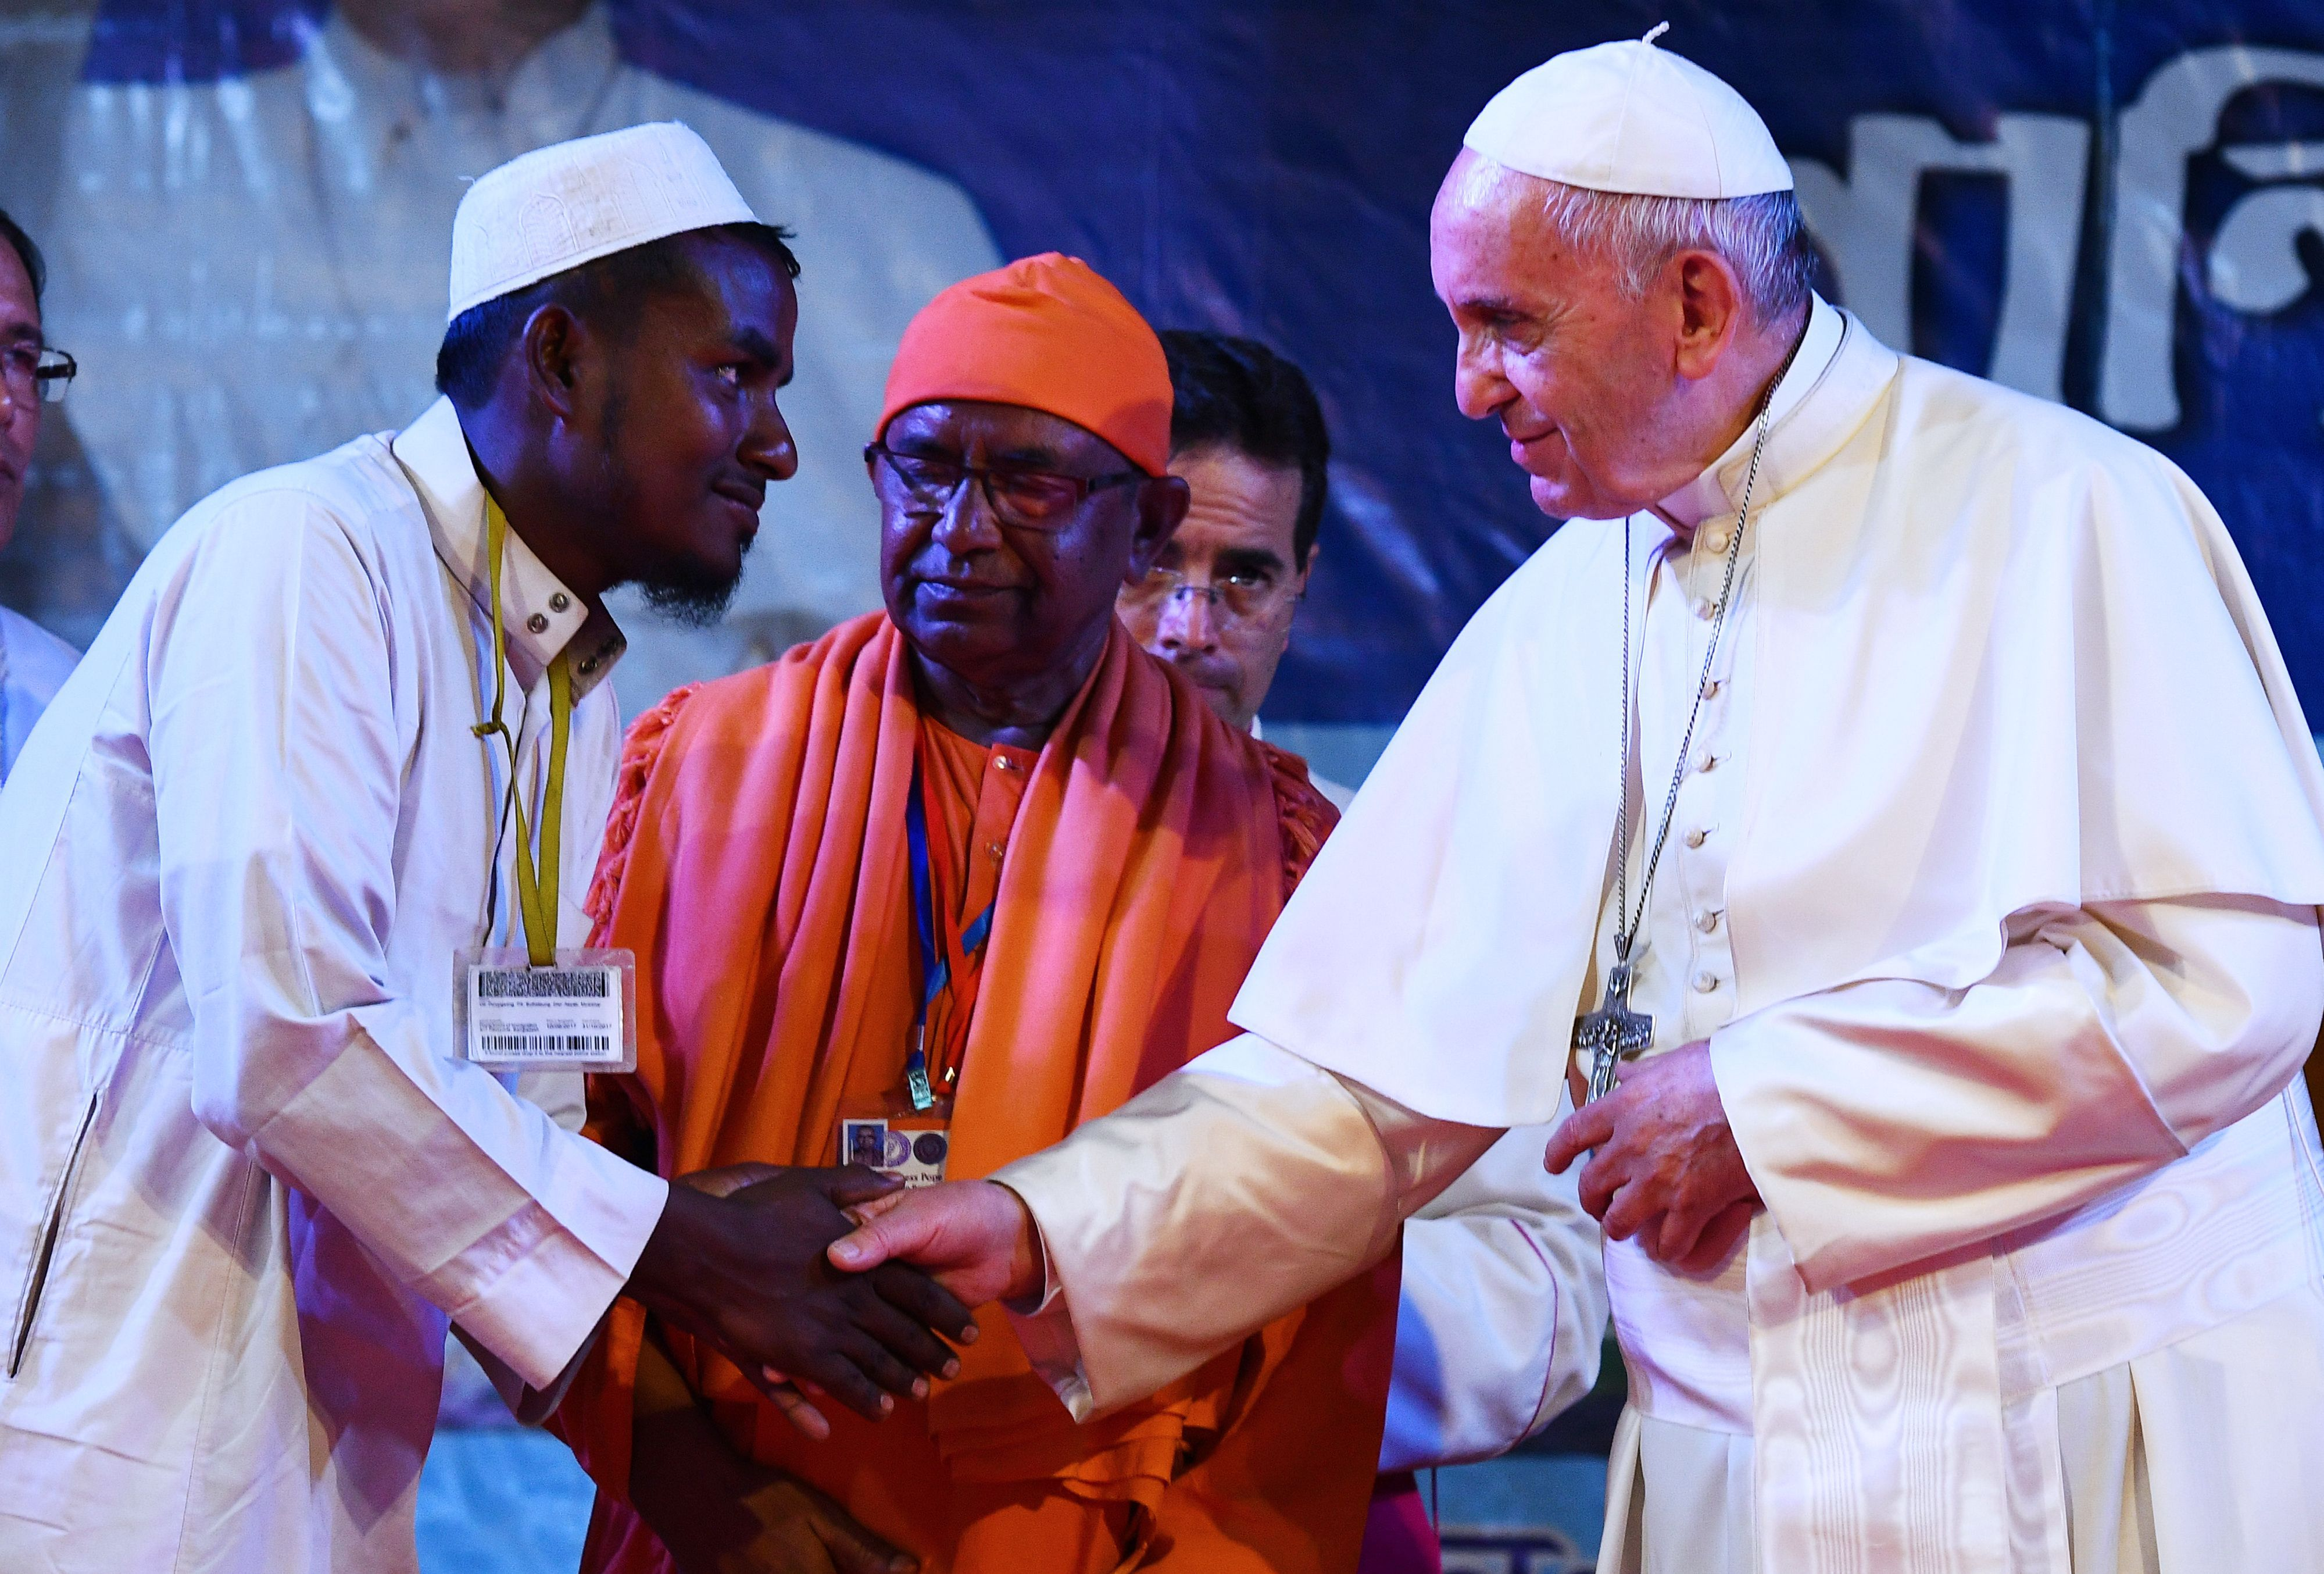 Pope Francis meets with a Rohingya refugee during an interreligious meeting at the Archbishop's house in Dhaka on December 1, 2017.   Pope Francis arrived in Bangladesh from Myanmar on November 30 for the second stage of a visit that has been overshadowed by the plight of hundreds of thousands of Rohingya refugees. / AFP PHOTO / Vincenzo PINTO        (Photo credit should read VINCENZO PINTO/AFP/Getty Images)